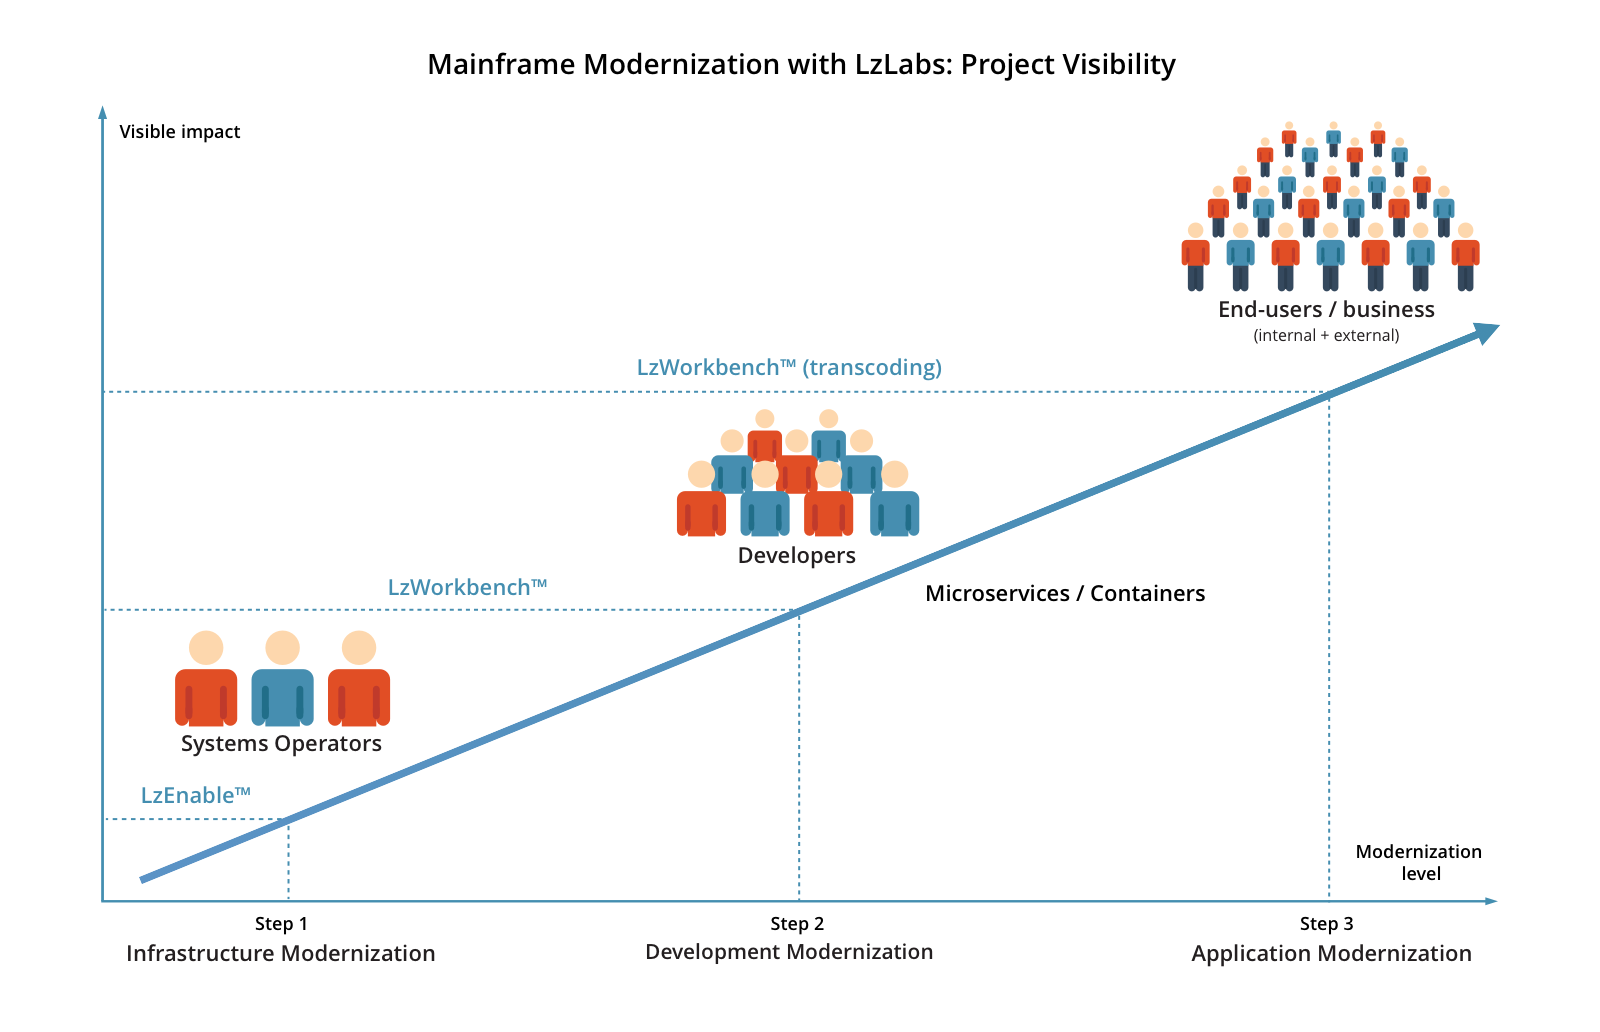 Legacy Modernization: a continuum of (visible) impact levels using the SDM